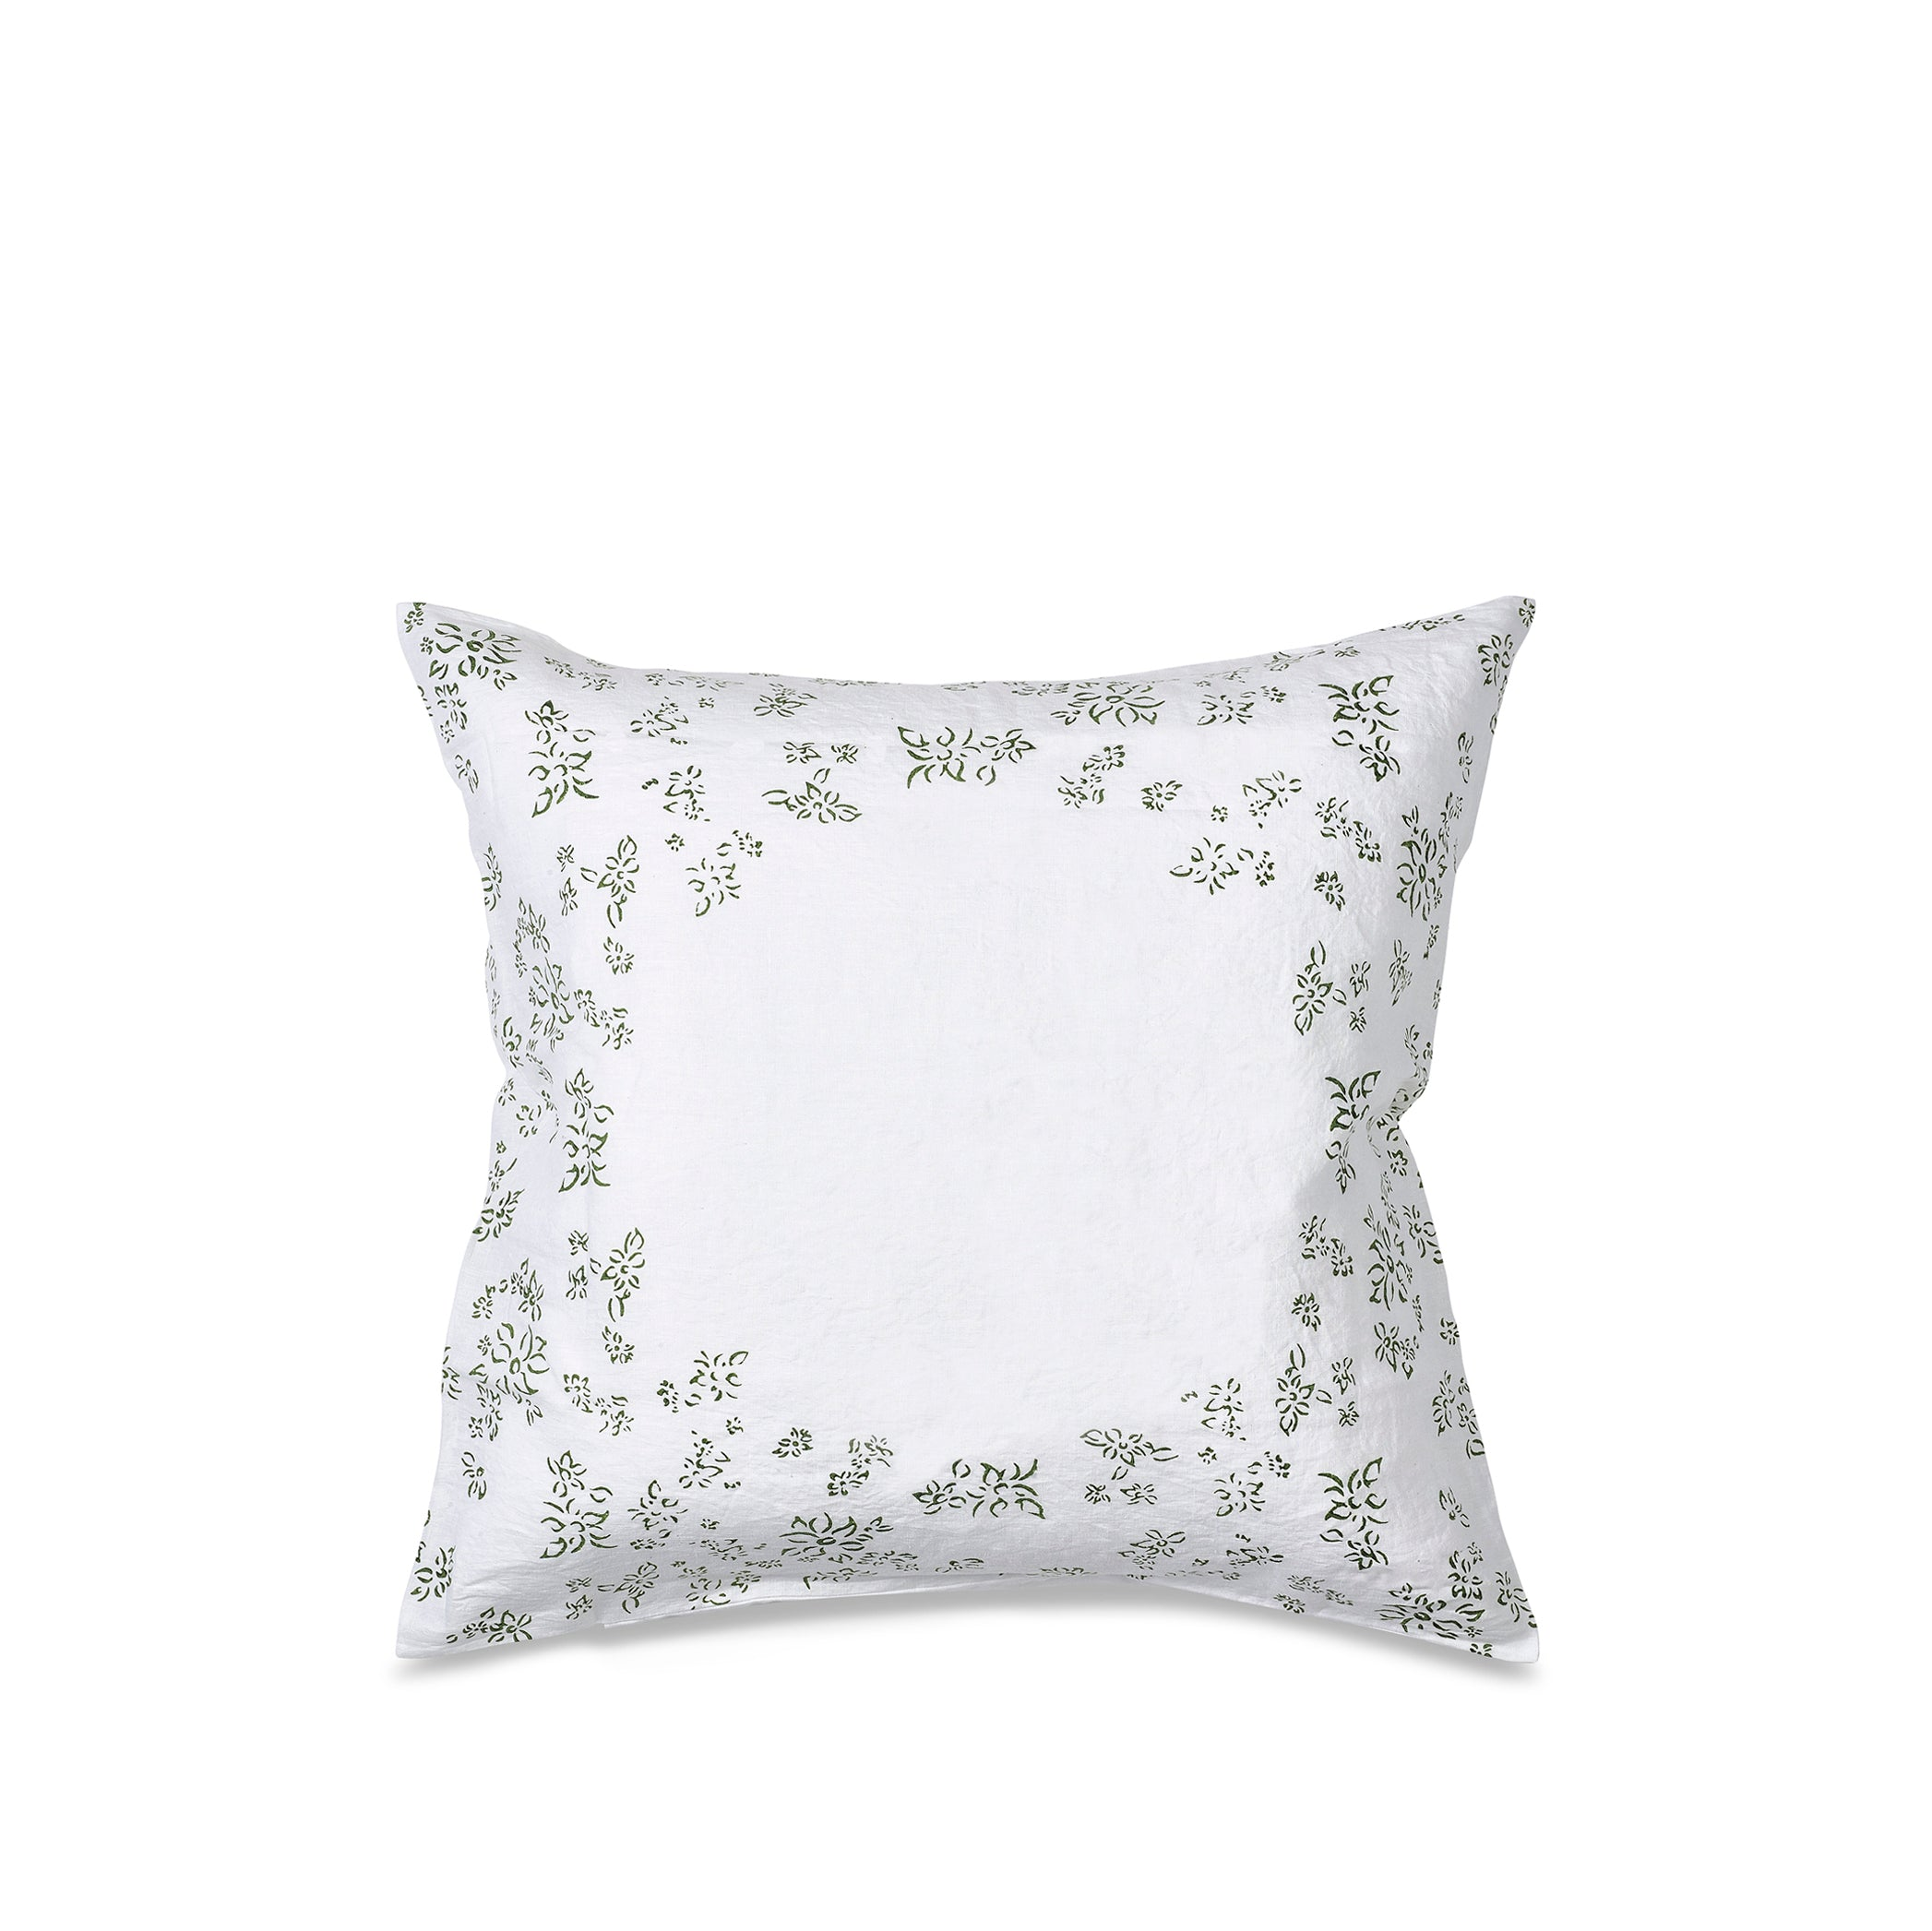 """Bernadette's Hand Stamped Falling Flower"" Linen Square Pillowcase in Avocado Green"